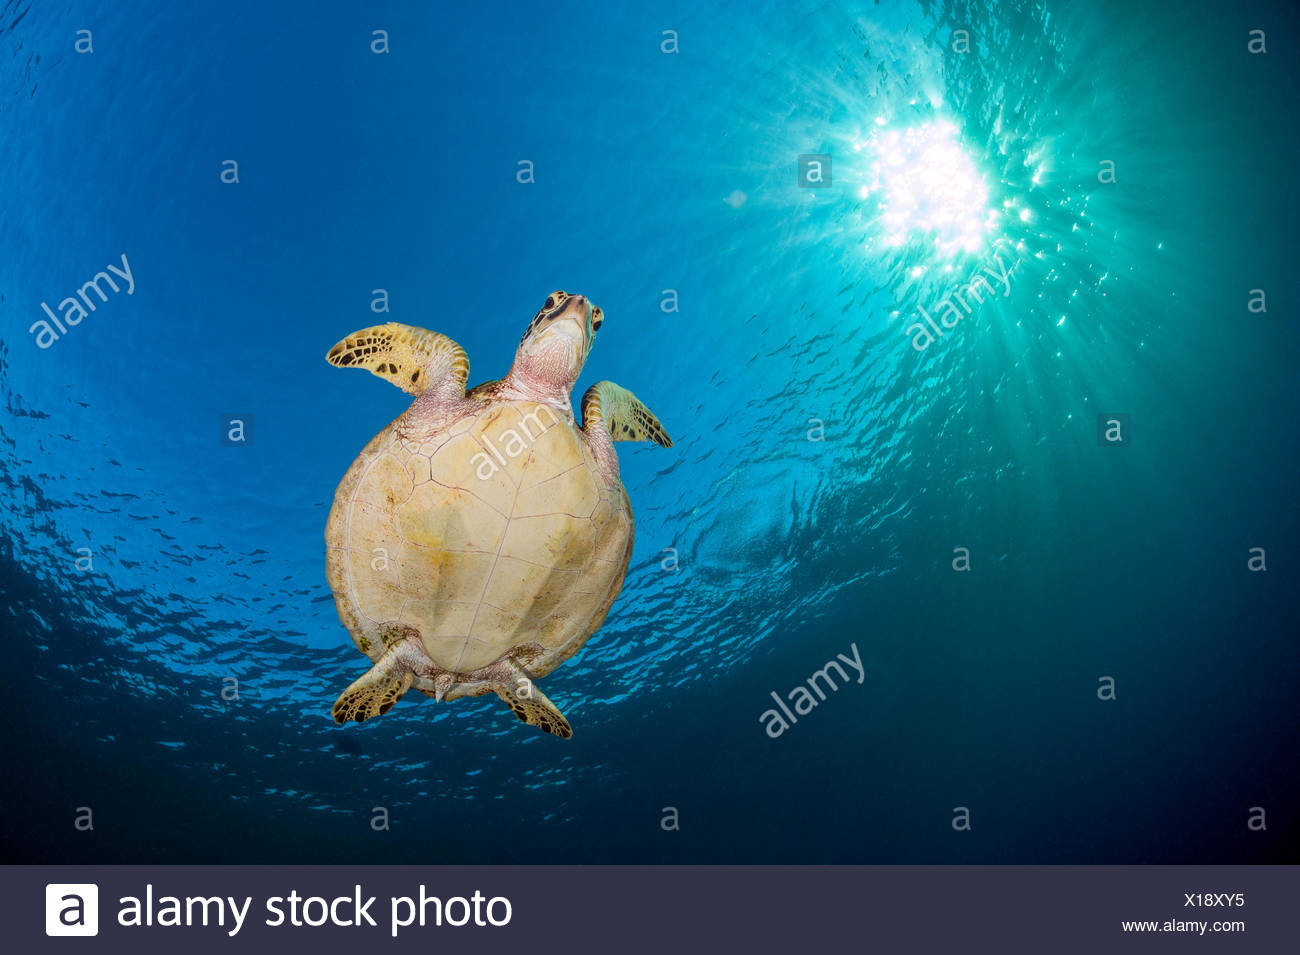 Green sea turtle (Chelonia mydas) swimming in blue beneath evening sun. Rock Islands, Palau, Mirconesia. Tropical west Pacific Ocean. - Stock Image